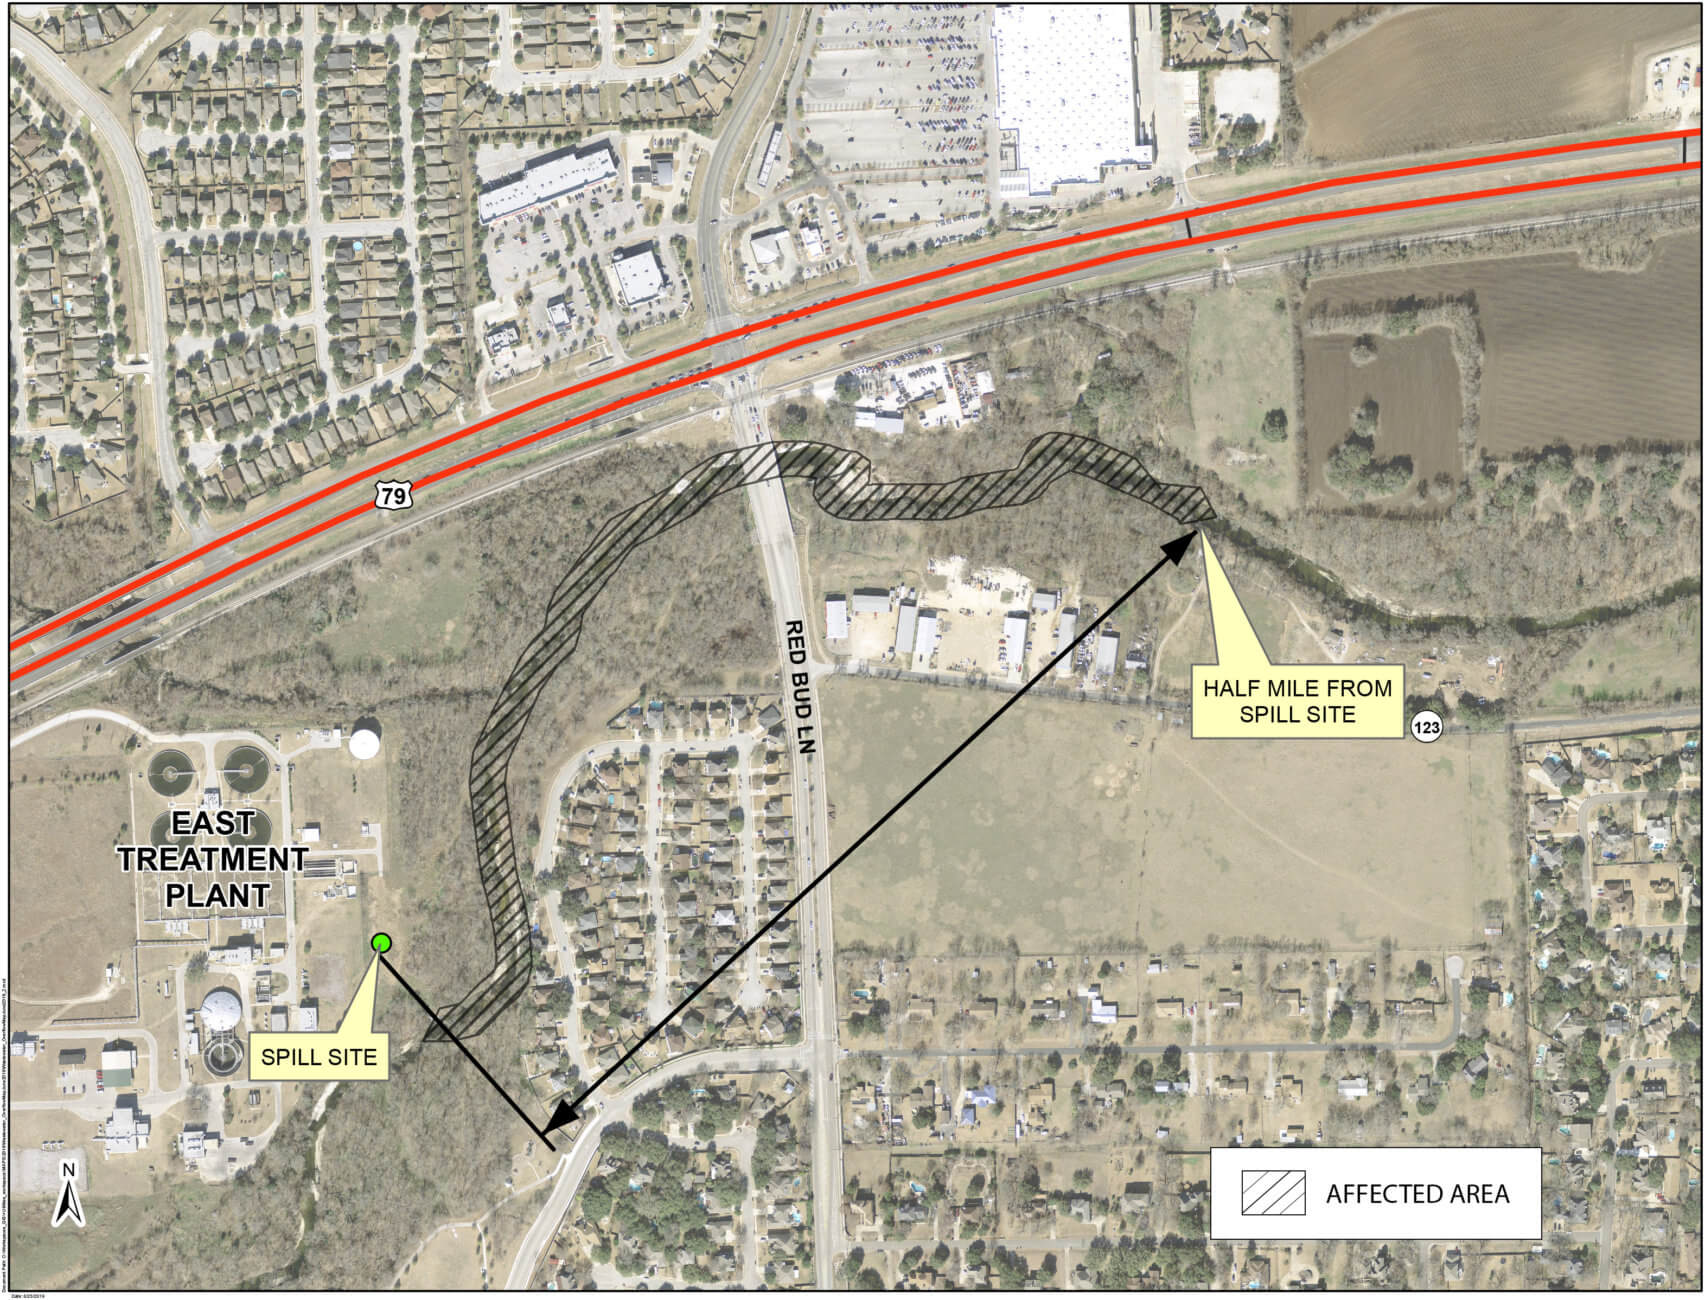 map showing affected area of wastewater spill